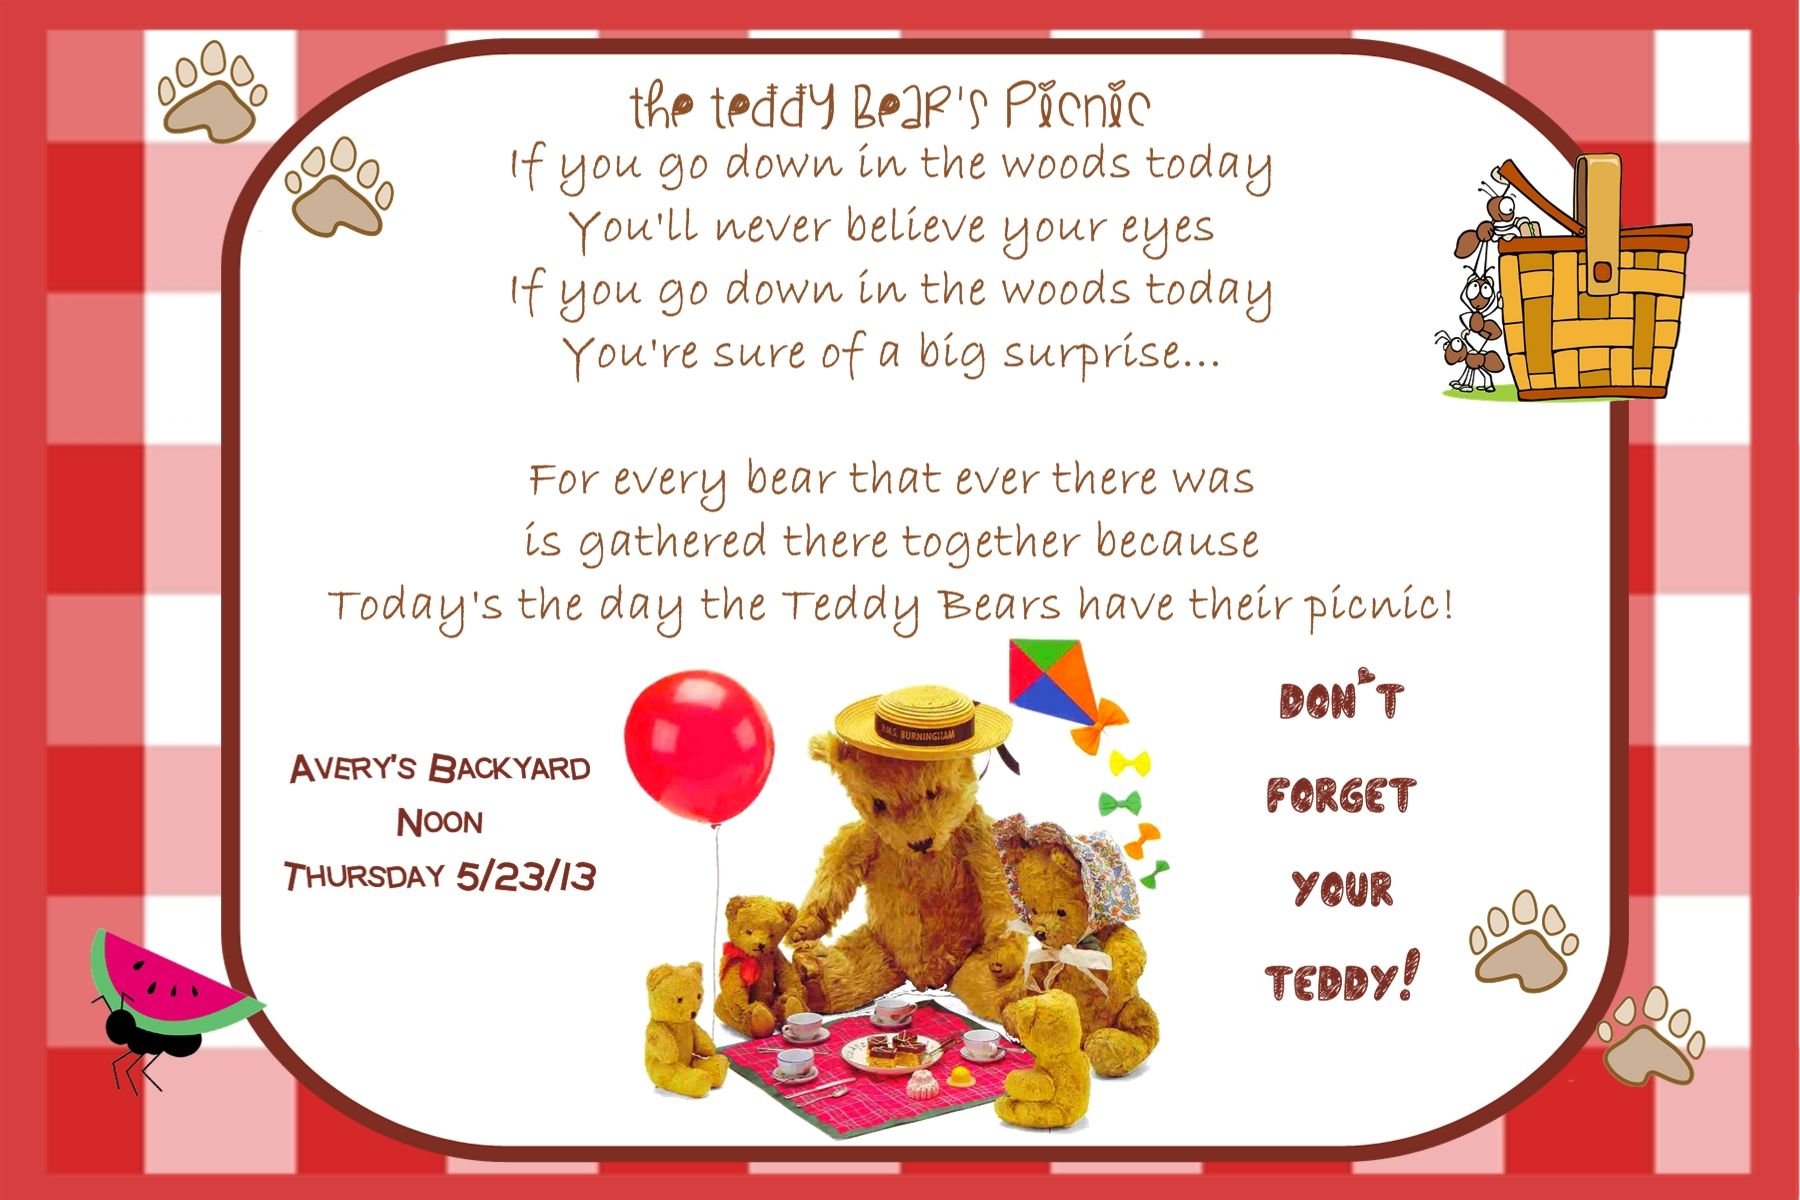 Teddy Bear Picnic Invite | Birthday Teddy Bears Picnic | Pinterest ...